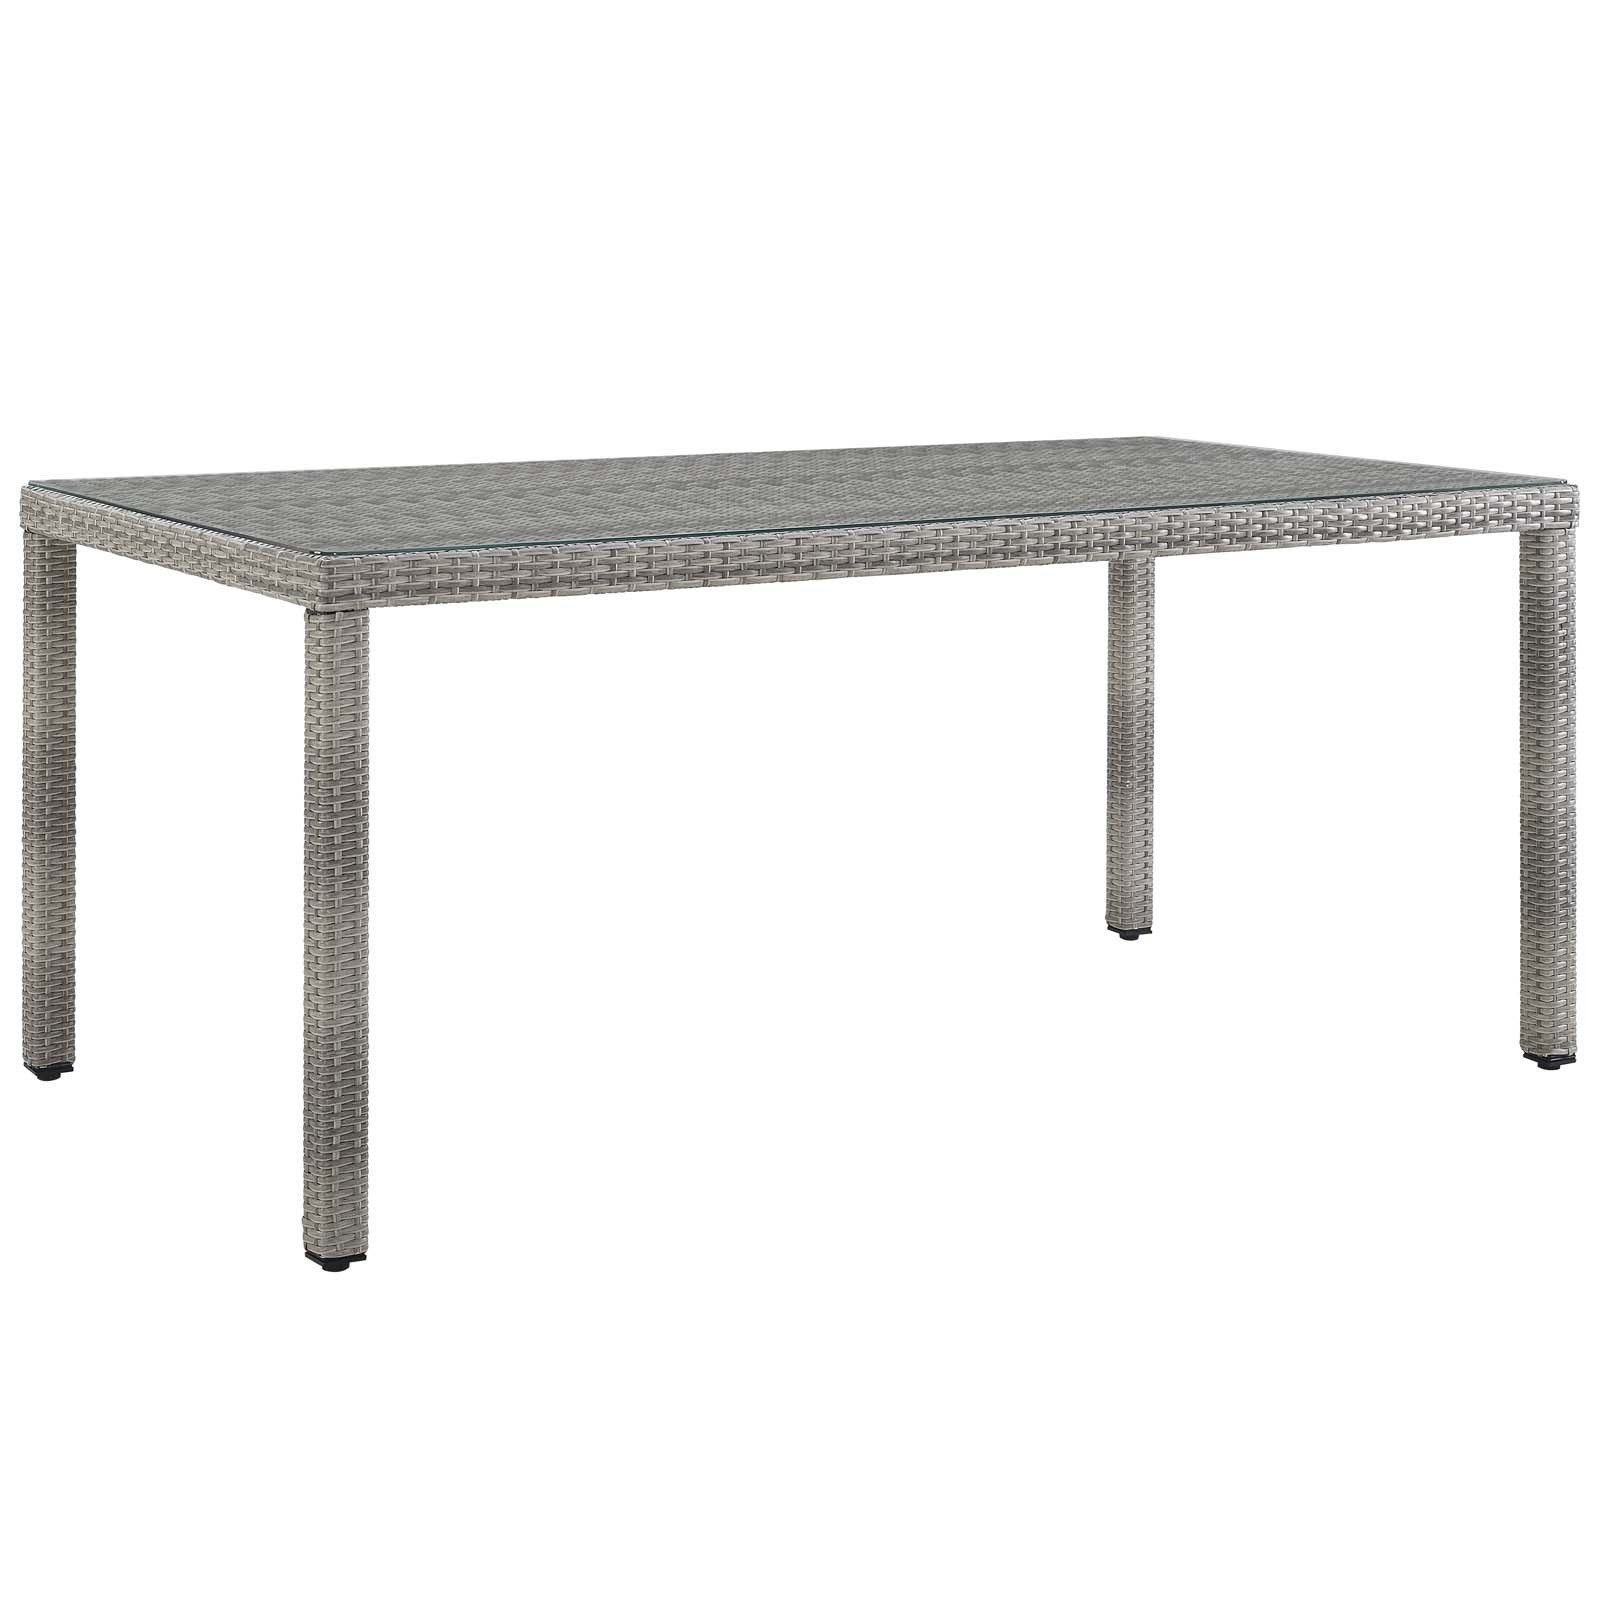 "Aura 68"" Outdoor Patio Wicker Rattan Dining Table in Gray"